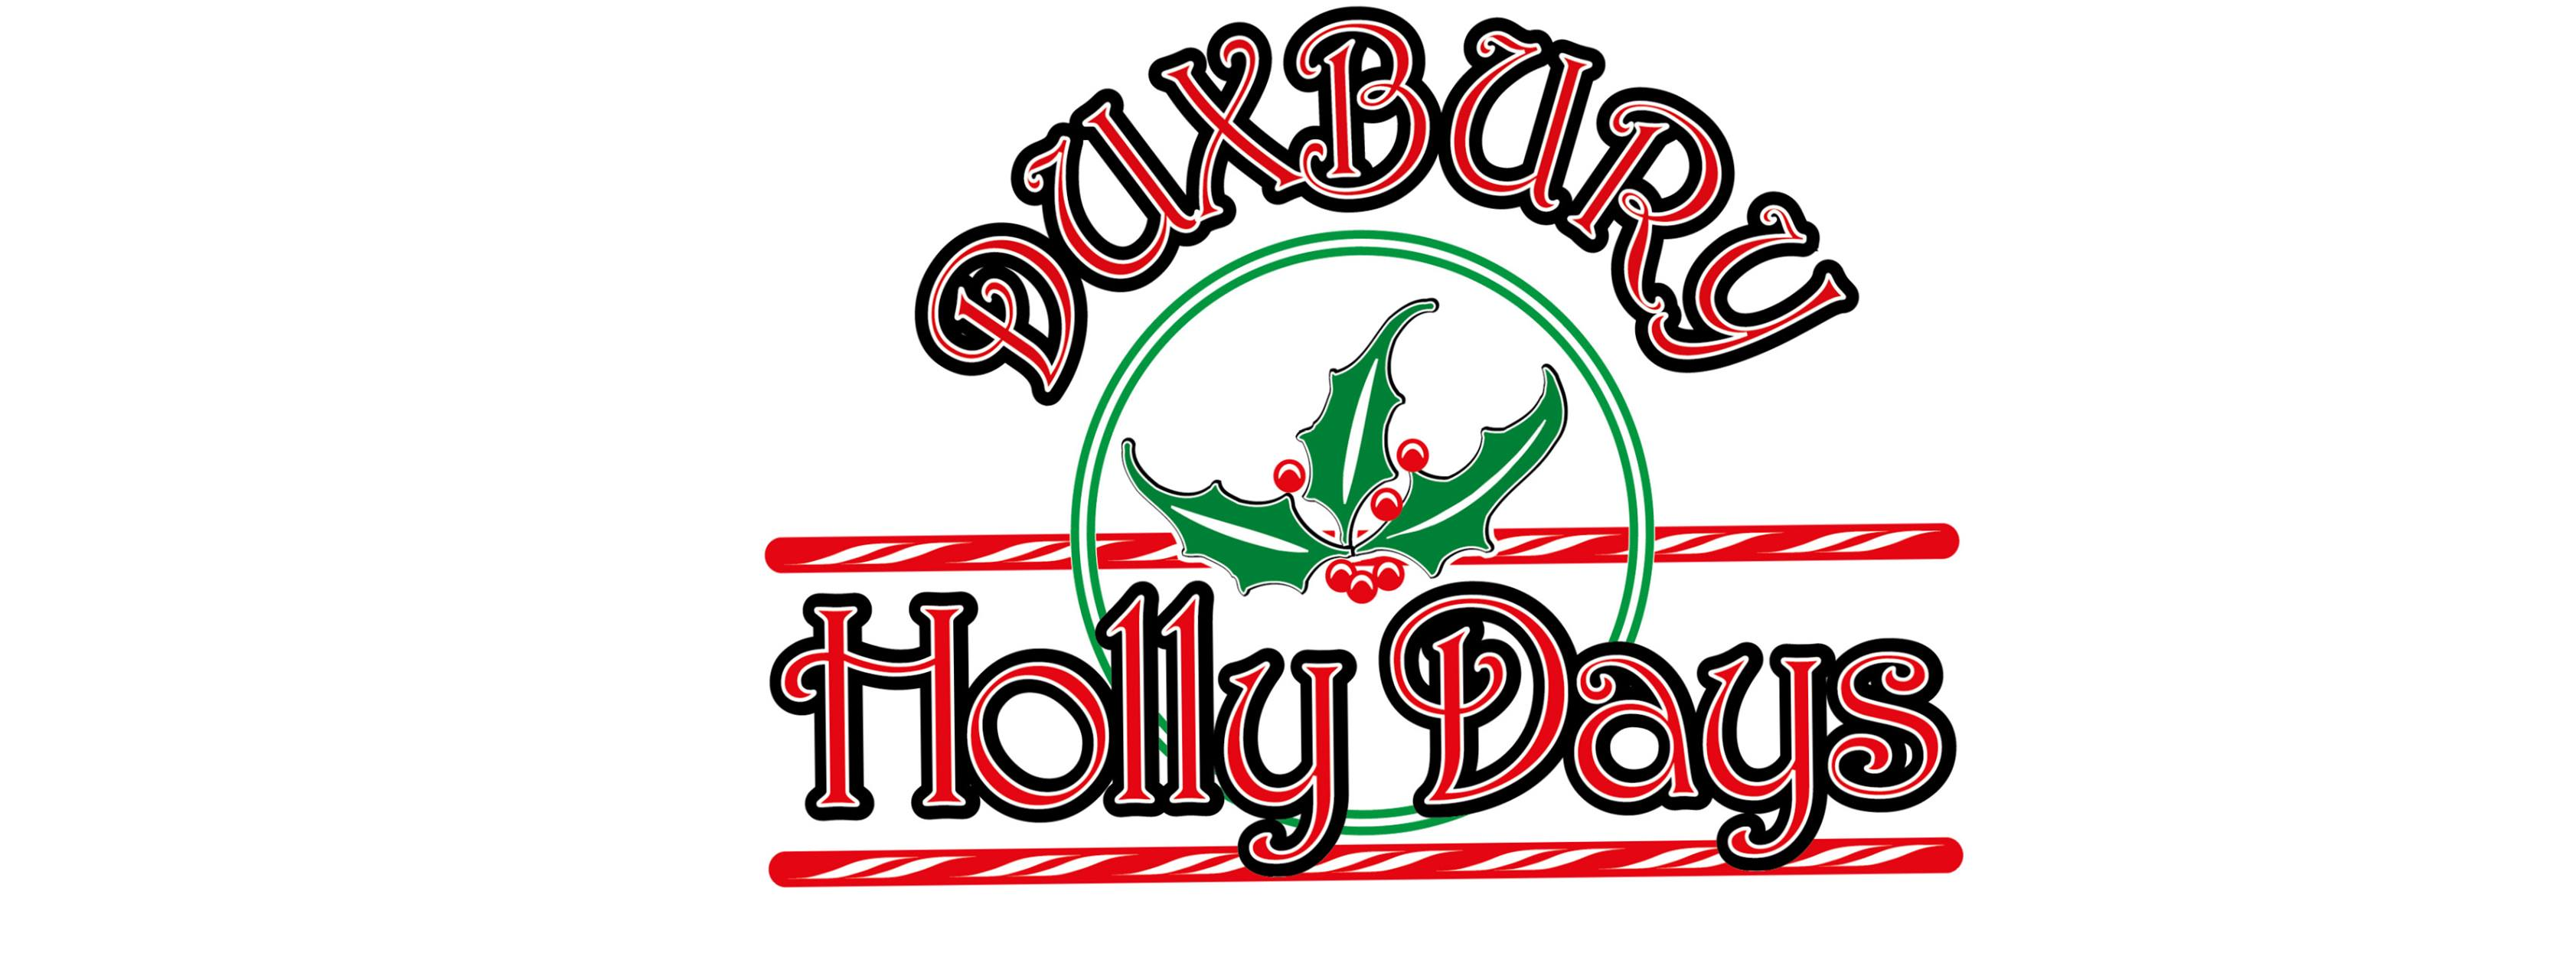 Logo Holly Days Duxbury Massachusetts